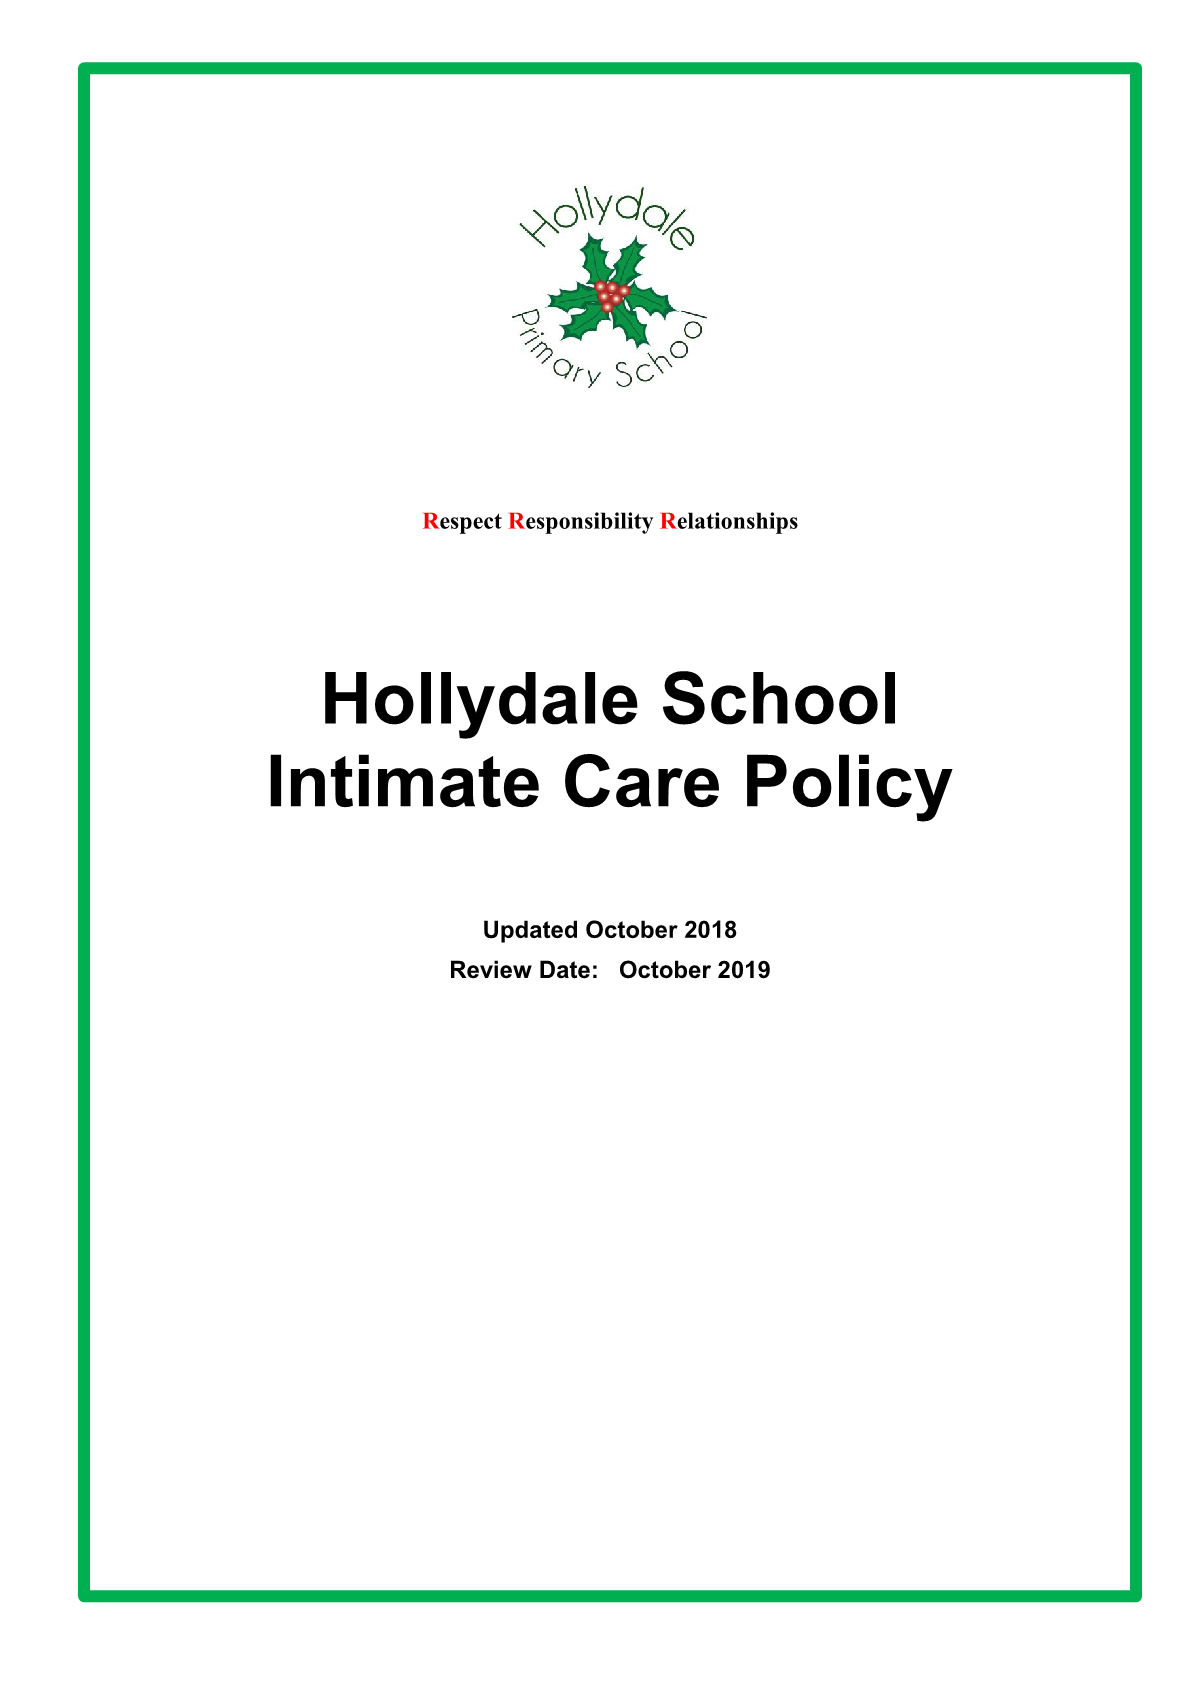 Intimate Care Policy